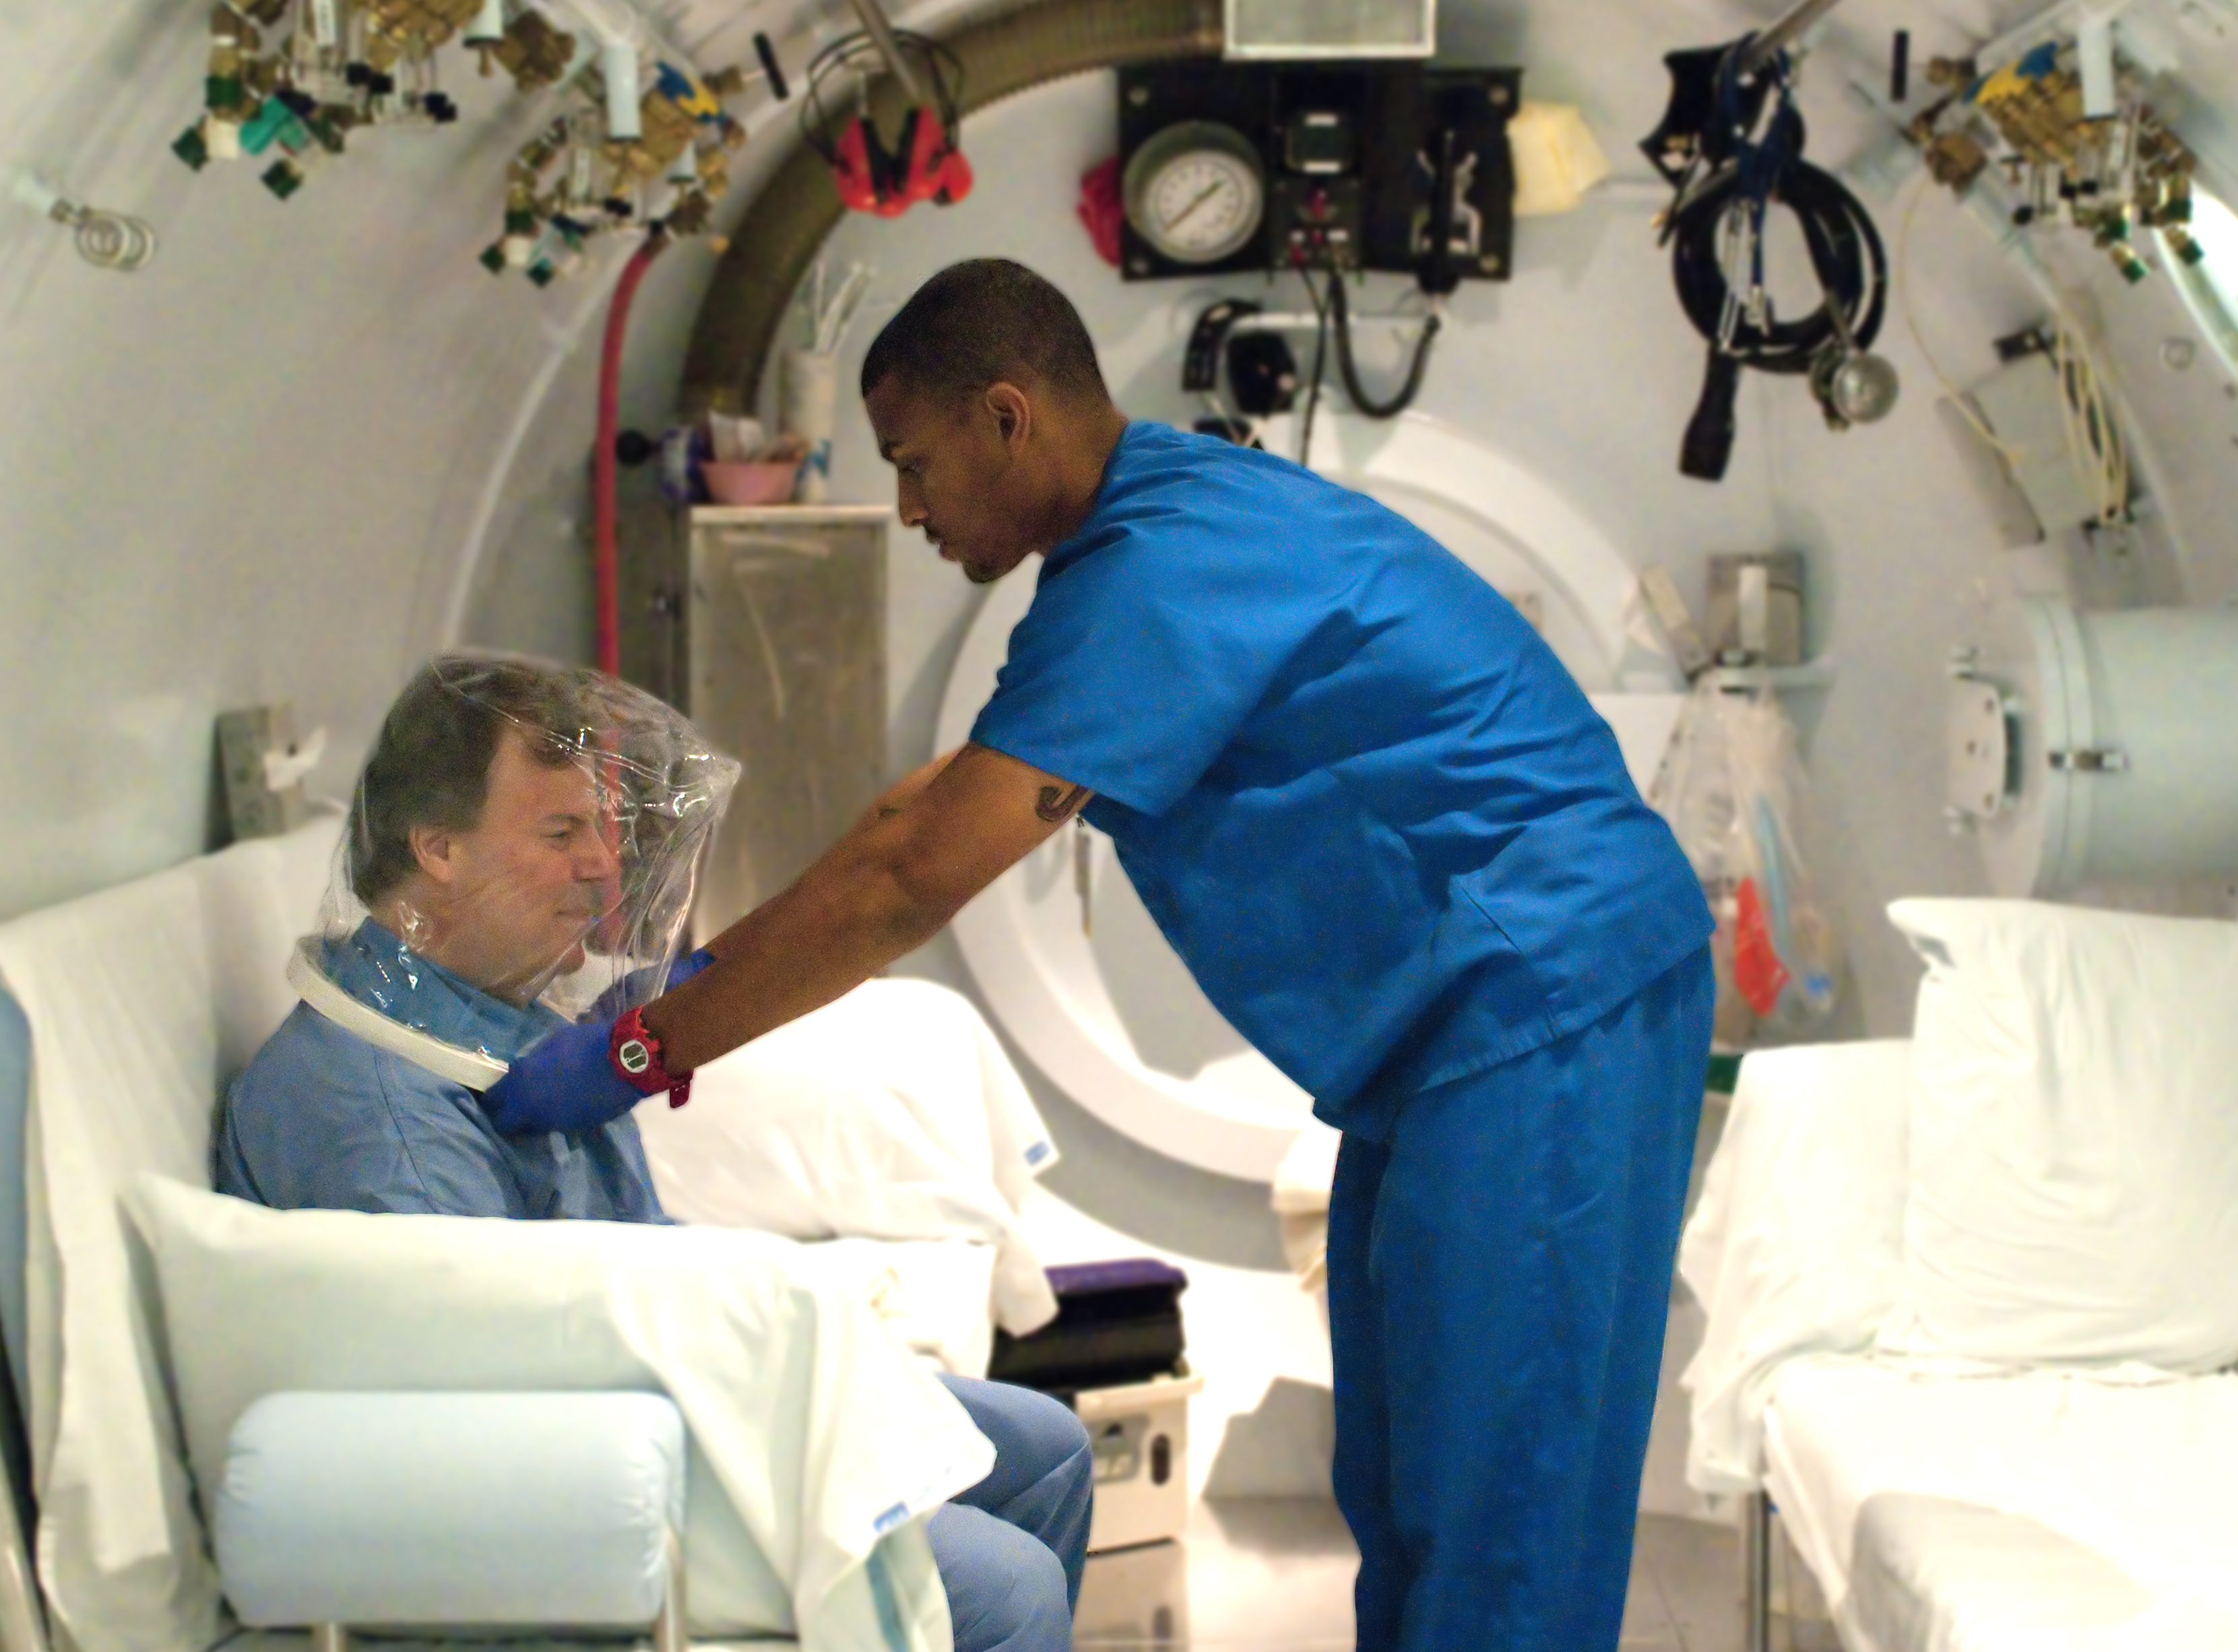 Joey Knox, a technician at the UCLA Gonda Center for Hyperbaric Medicine, puts on an oxygen bubble over patient Jody Glasser, who is currently being treated for damaged blood vessels incurred during radiation therapy for cancer.